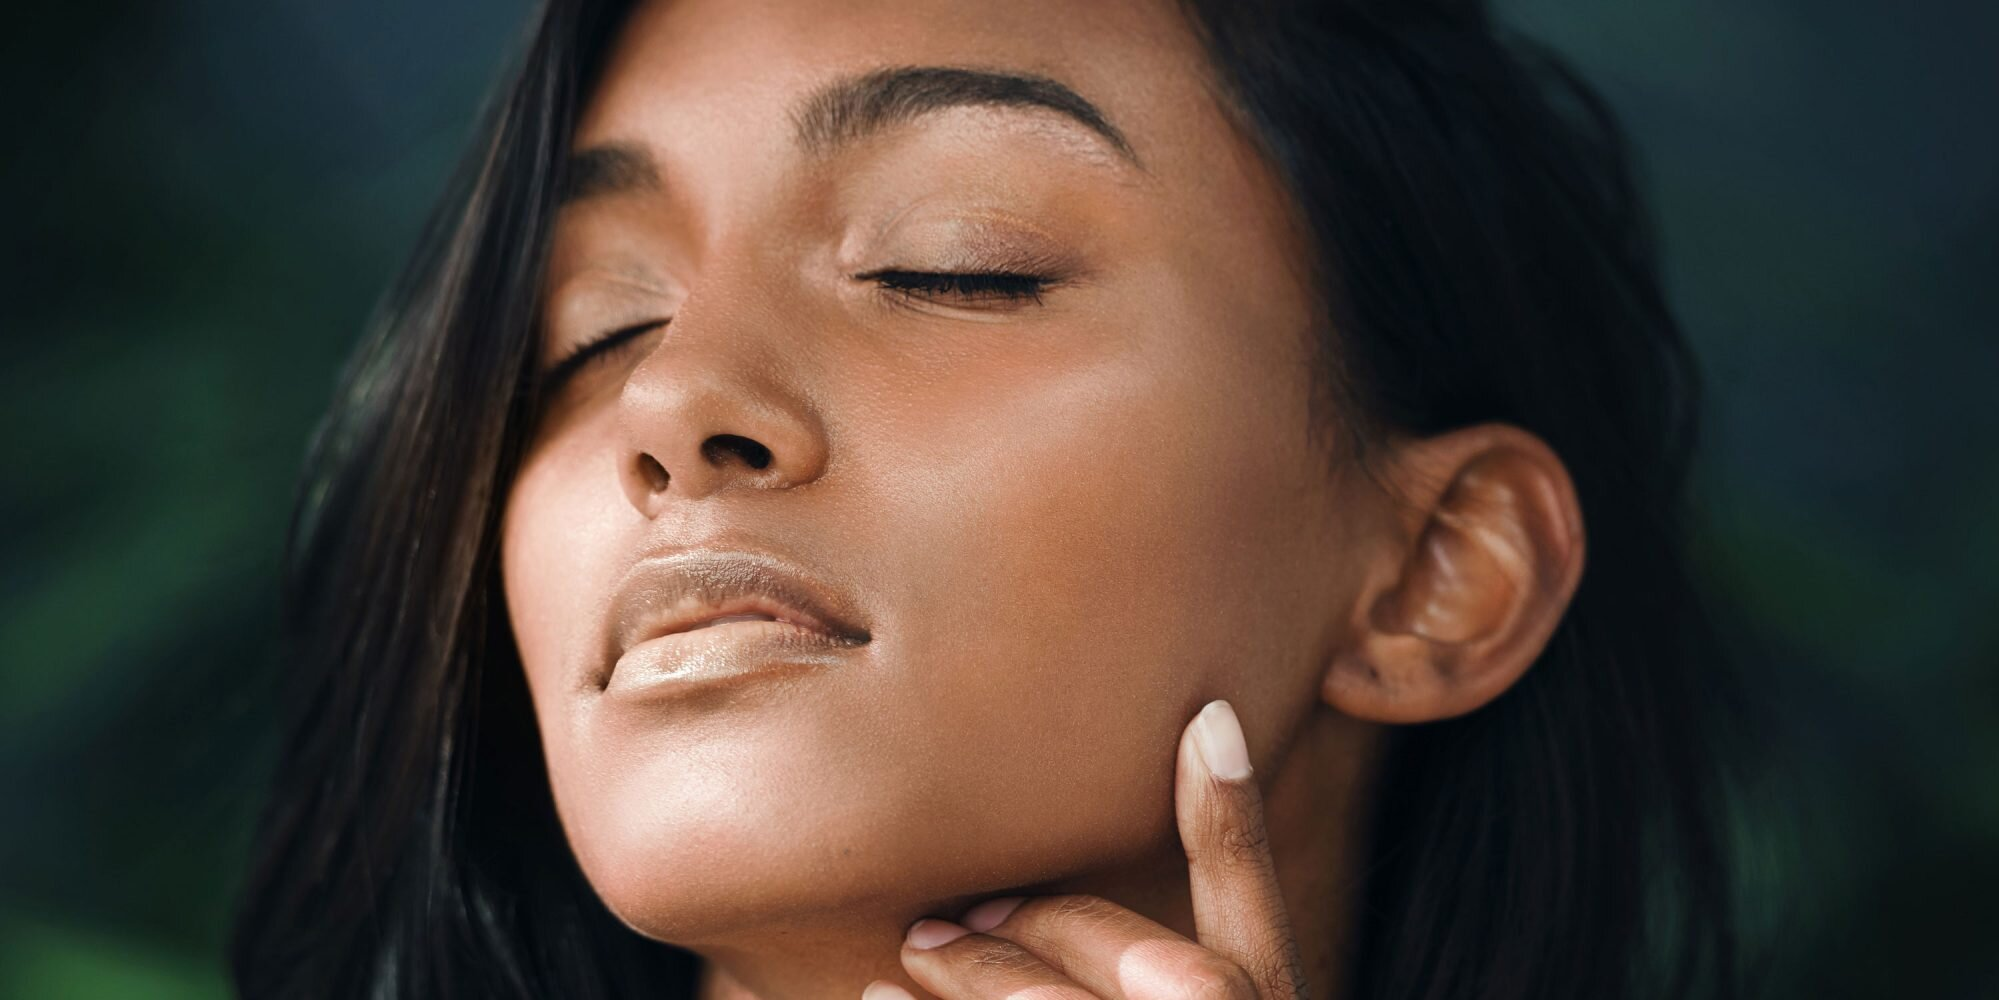 The 8 Best Collagen Creams for Plump, Dewy Skin